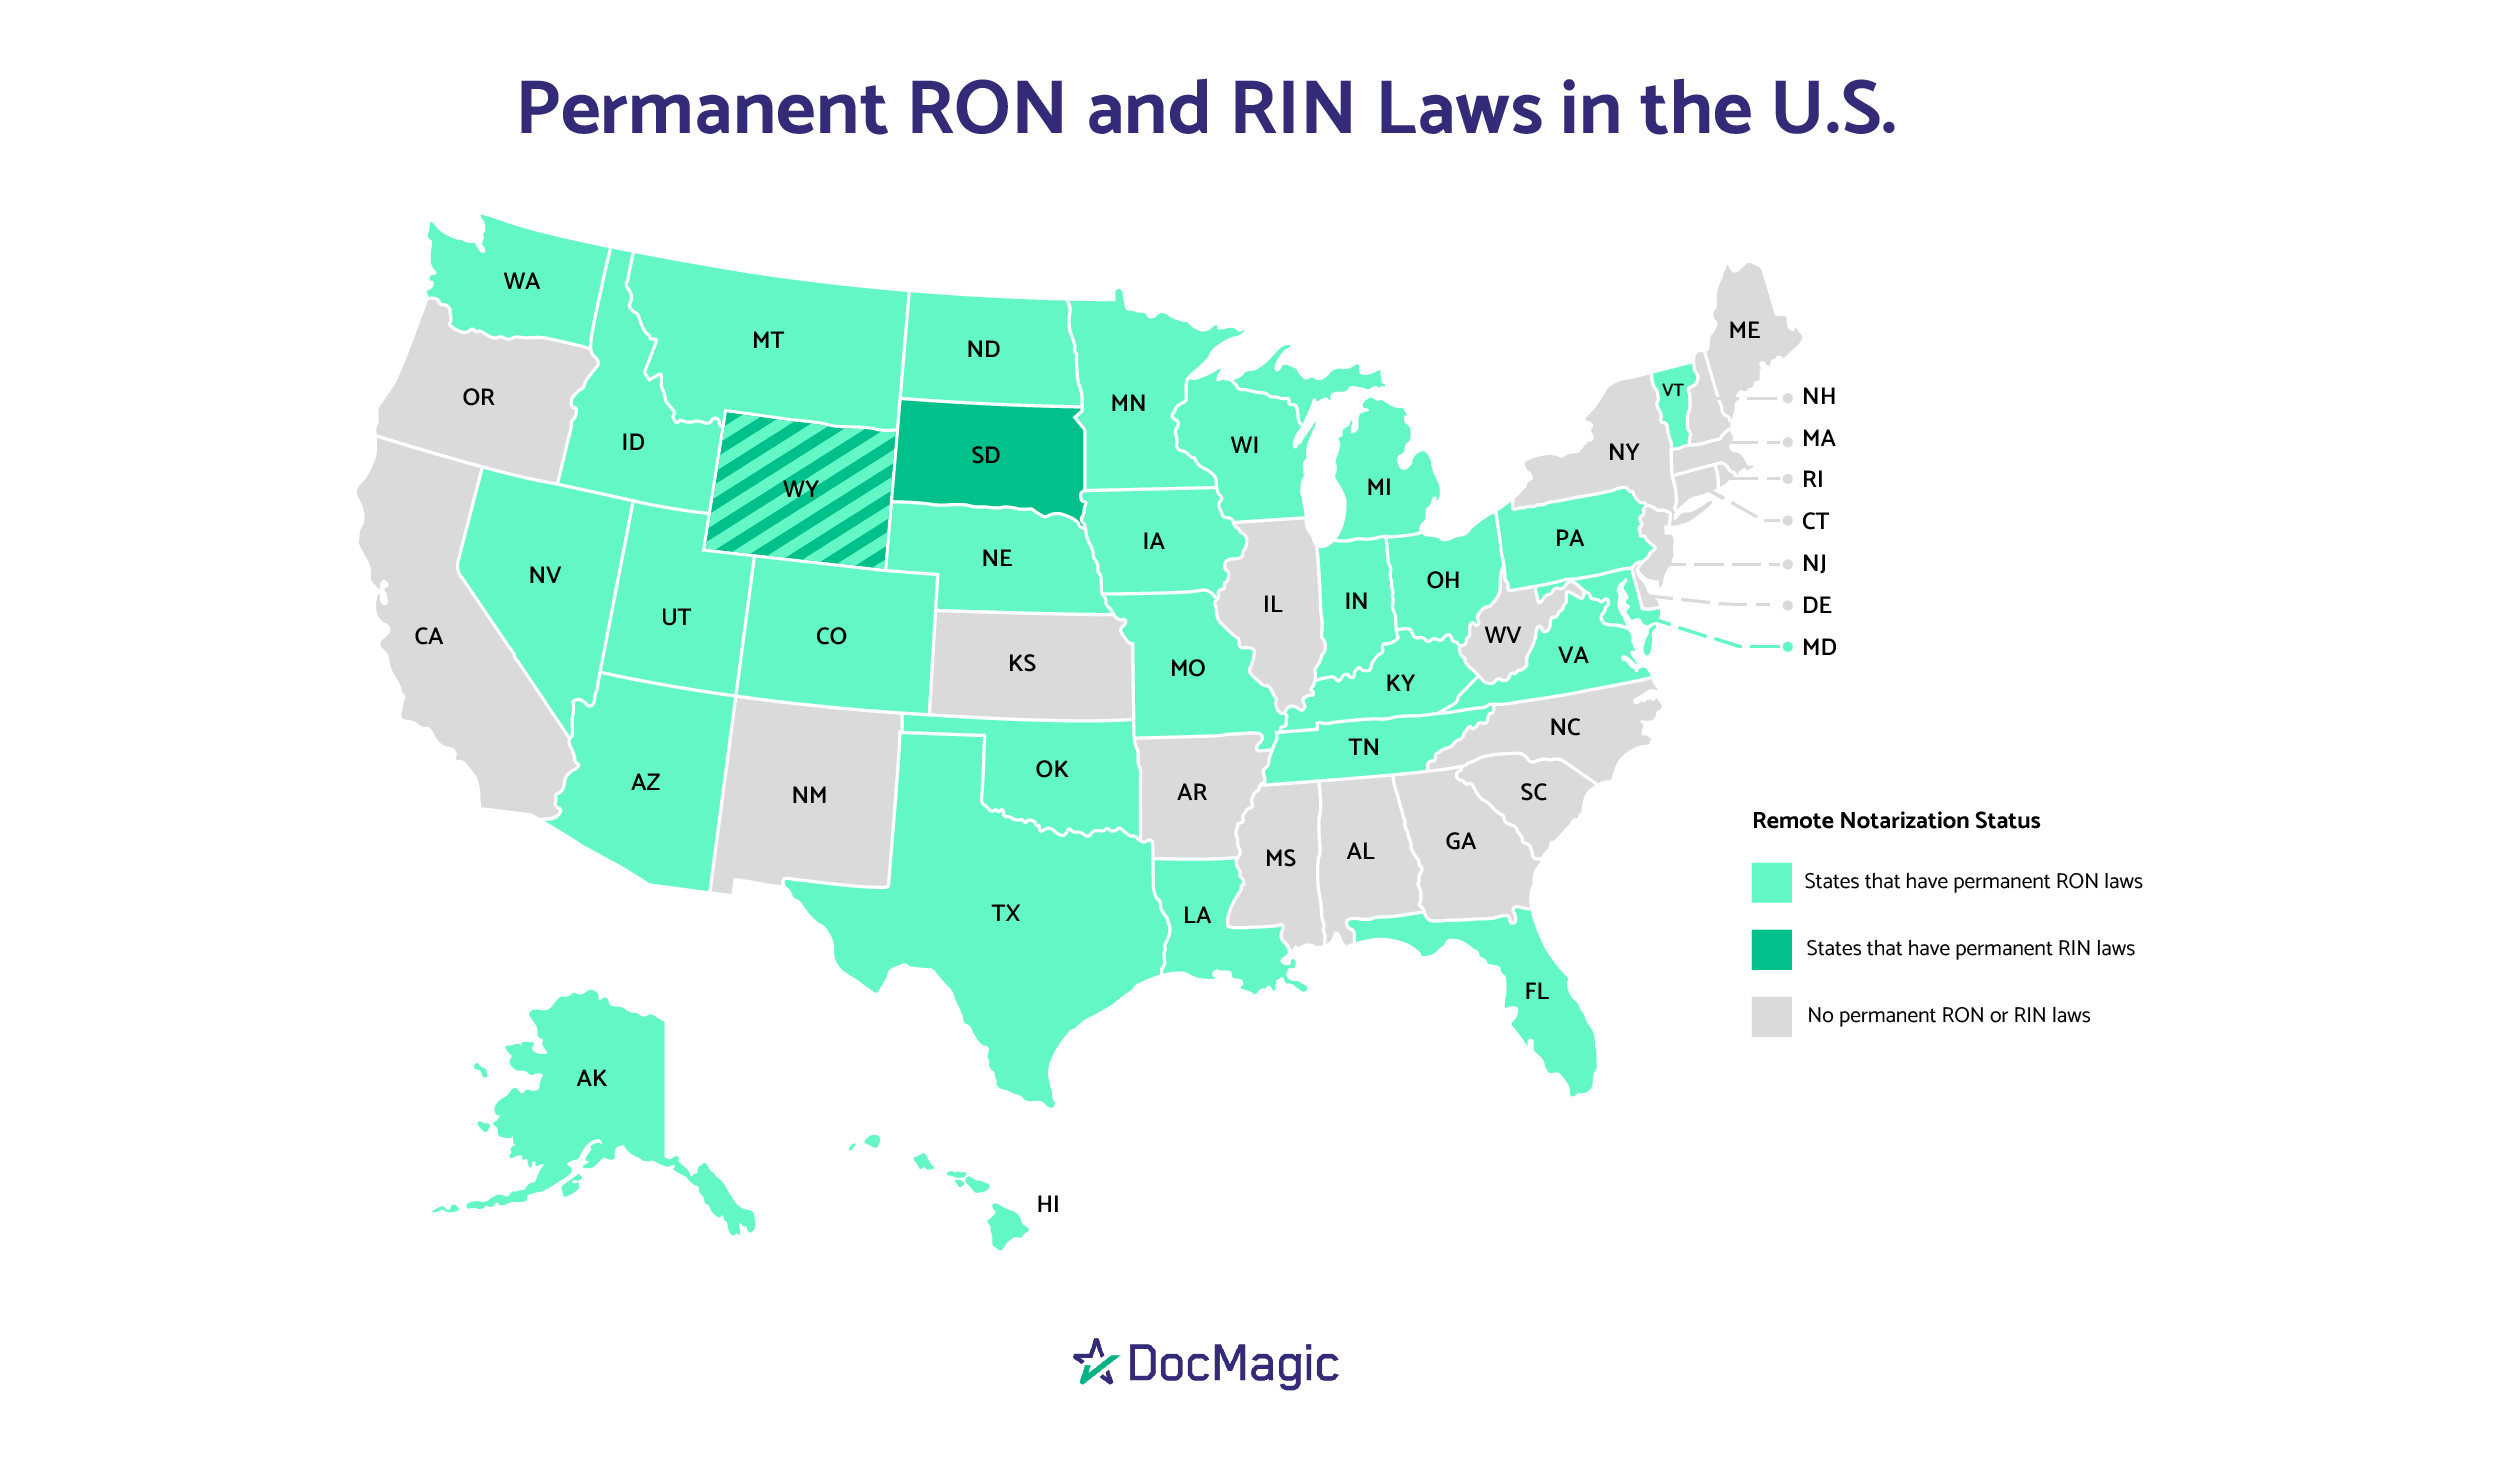 There are now 29 states with permanent remote online notarization (RON) laws, while two have permanent remote ink-signed notarization laws.